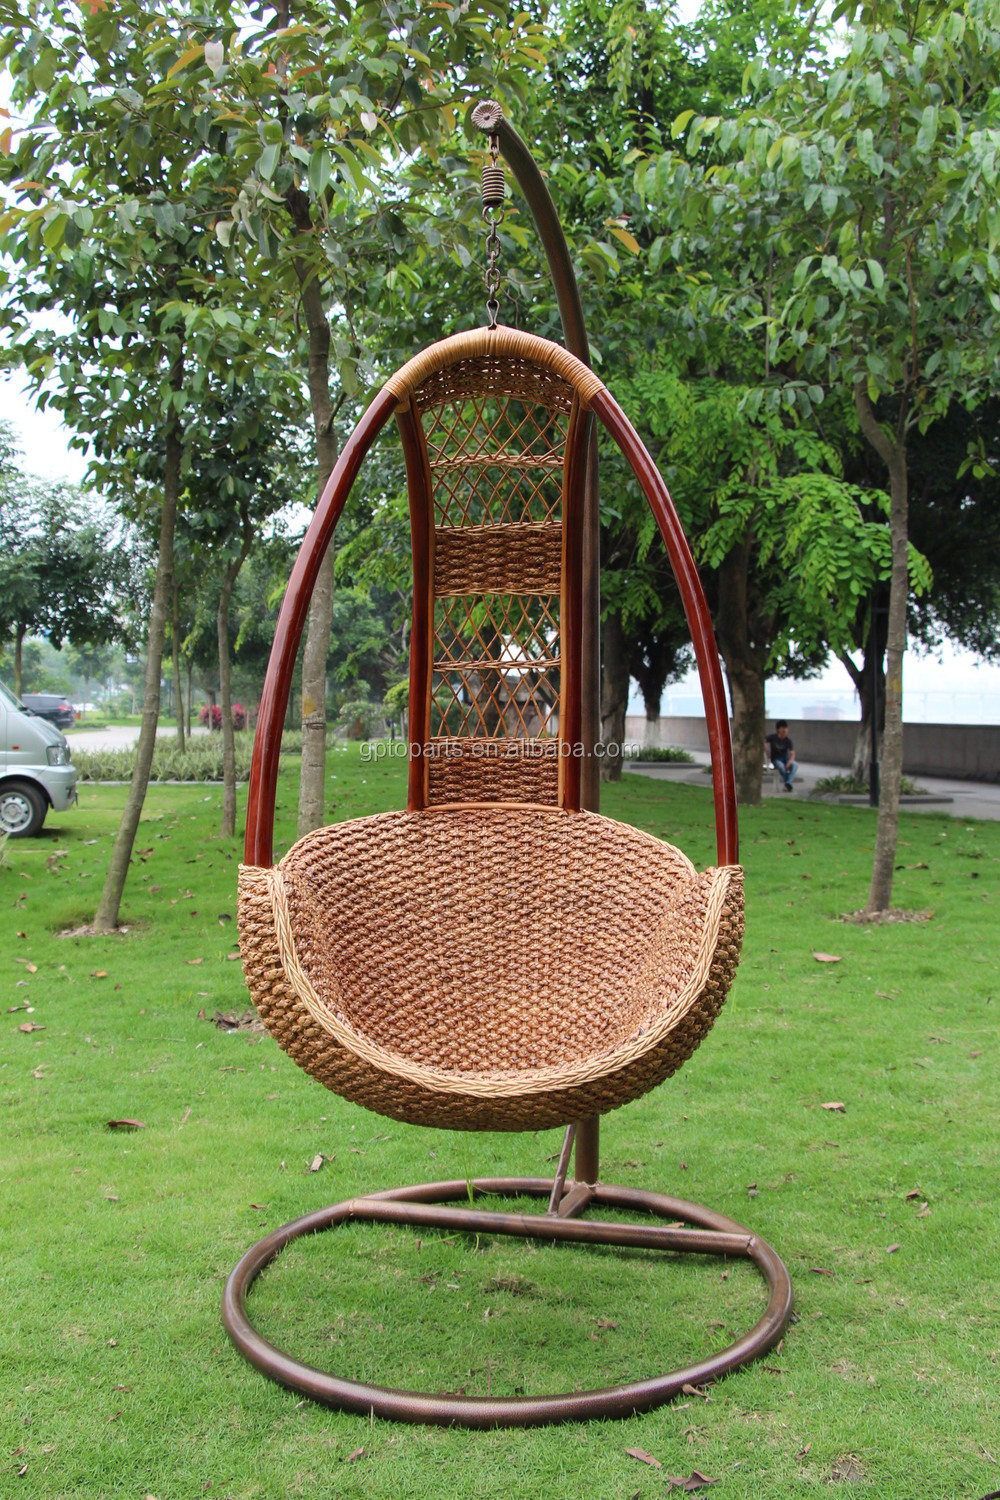 Designer Cane Hanging Outdoor Garden Swing Chair Hammock Wicker